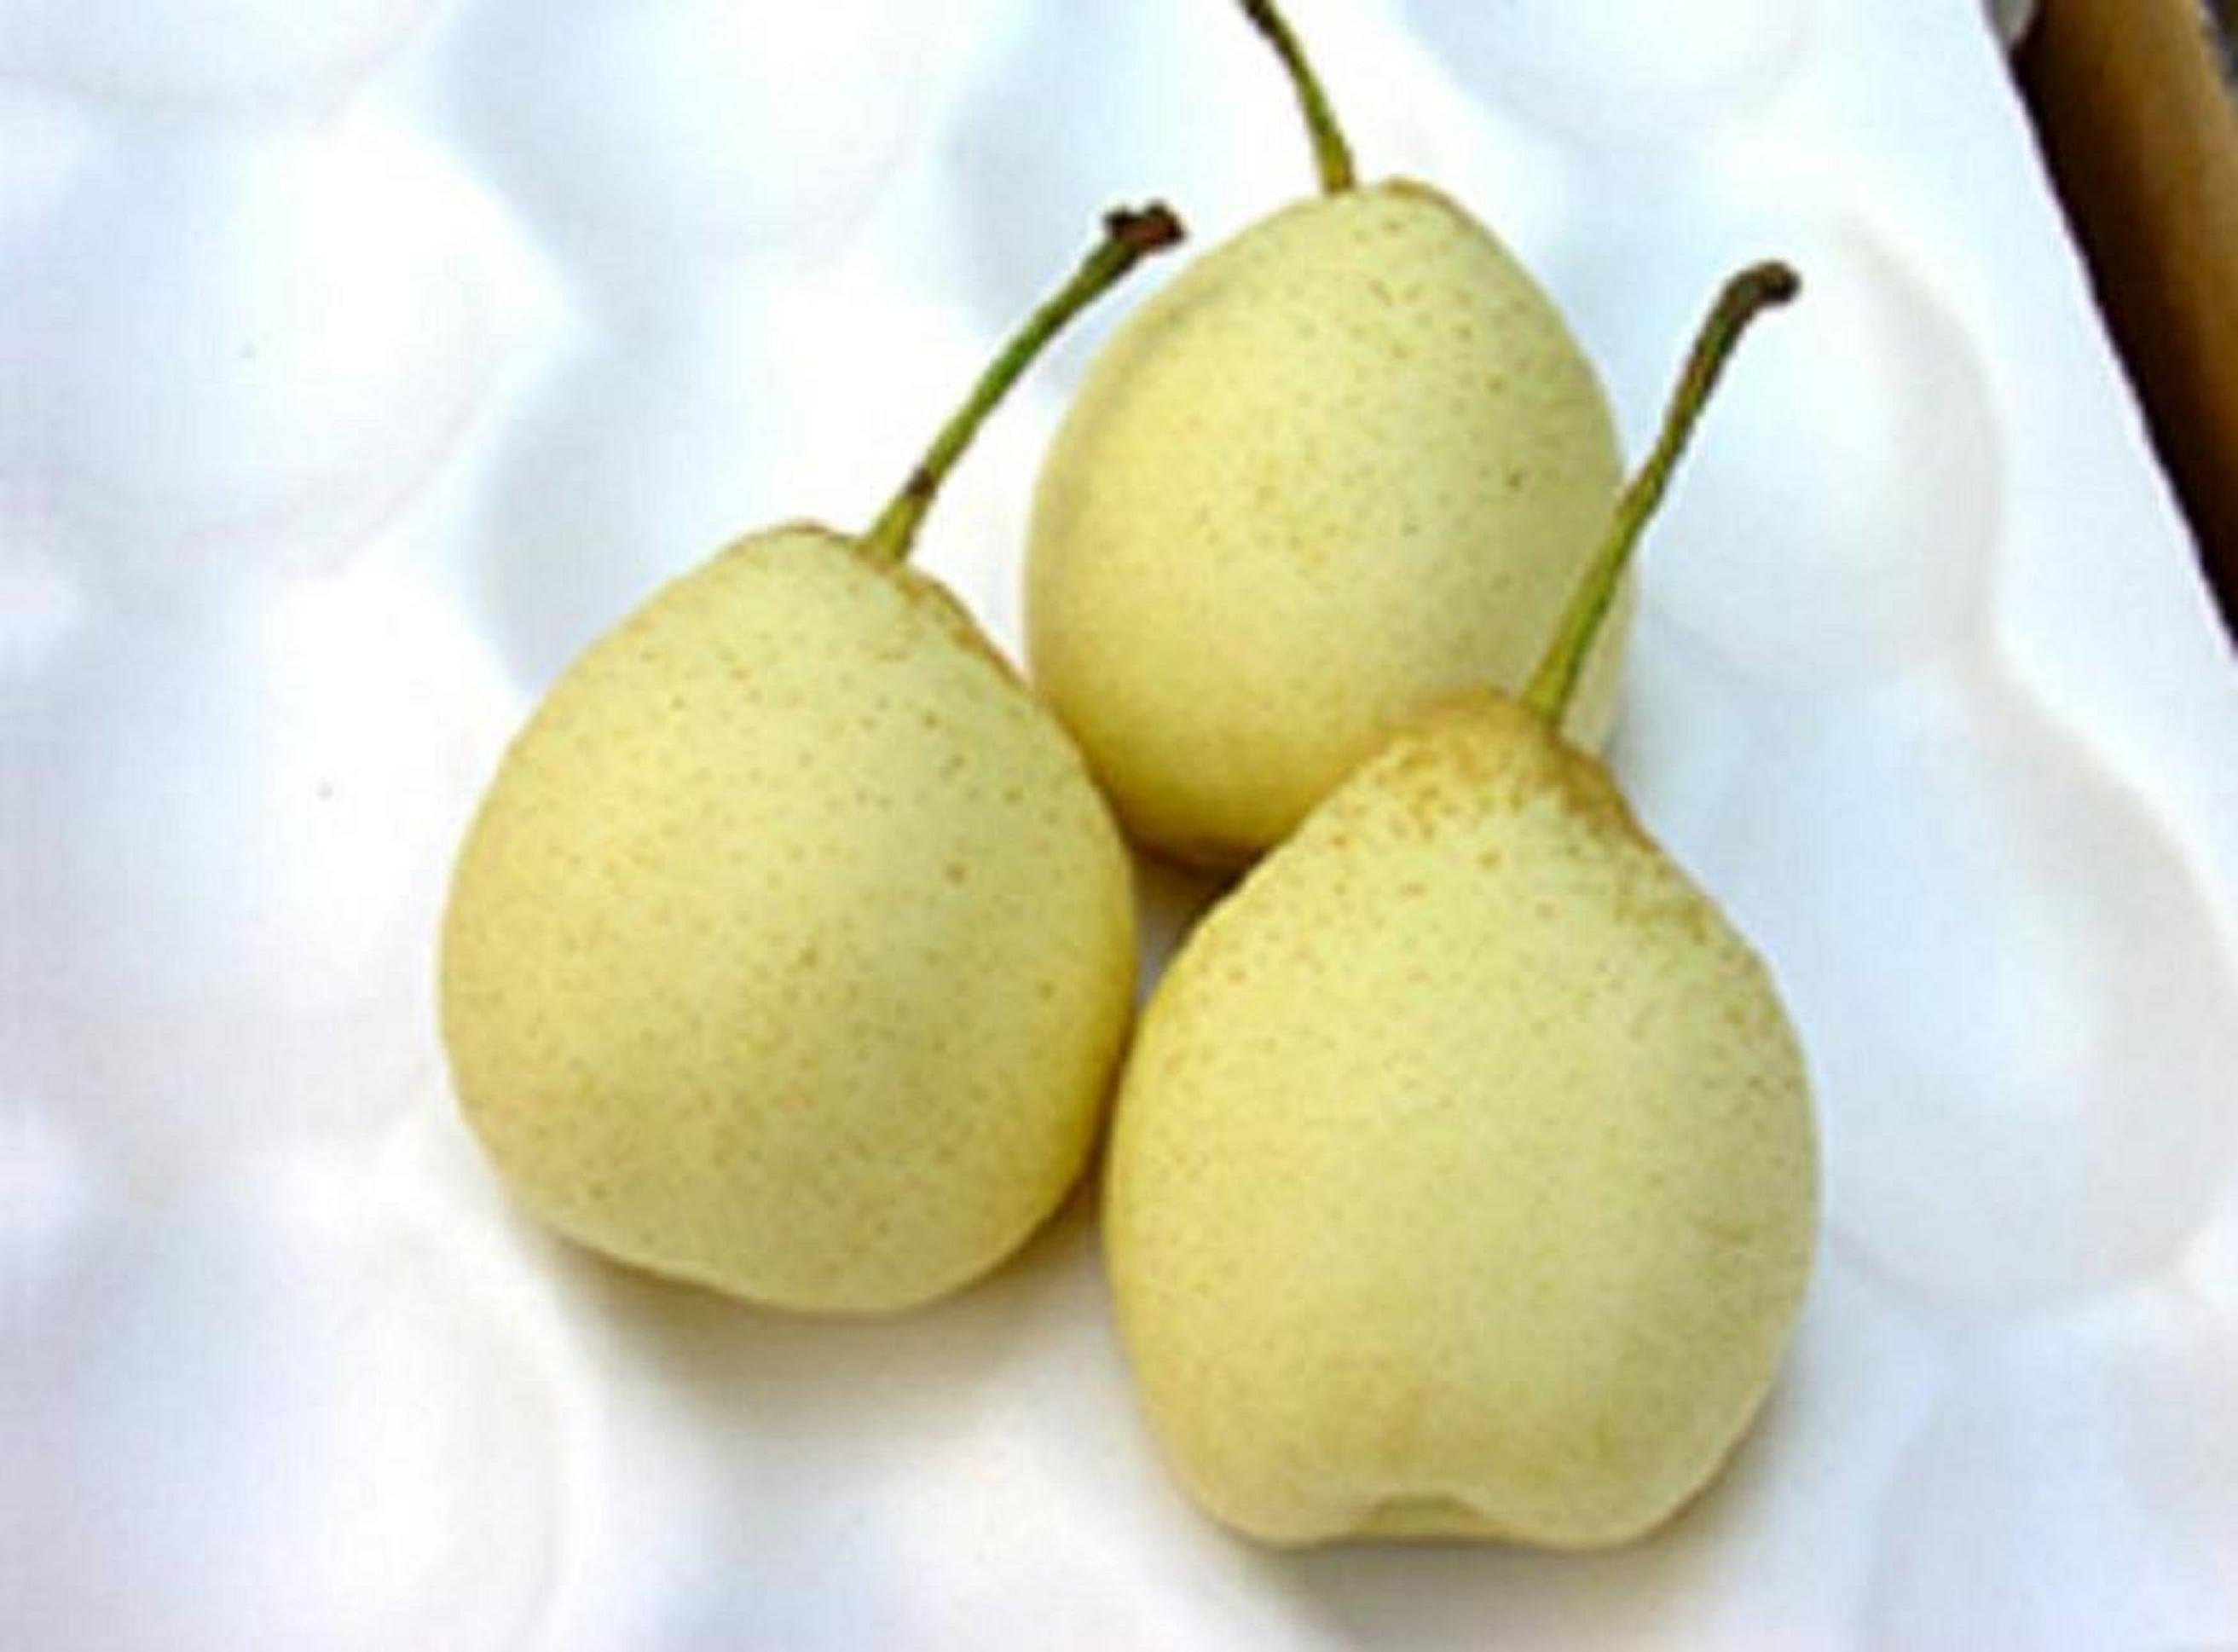 Chinese Ya Pear in Carton products,China Chinese Ya Pear in Carton supplier2625 x 1938 jpeg 219kB